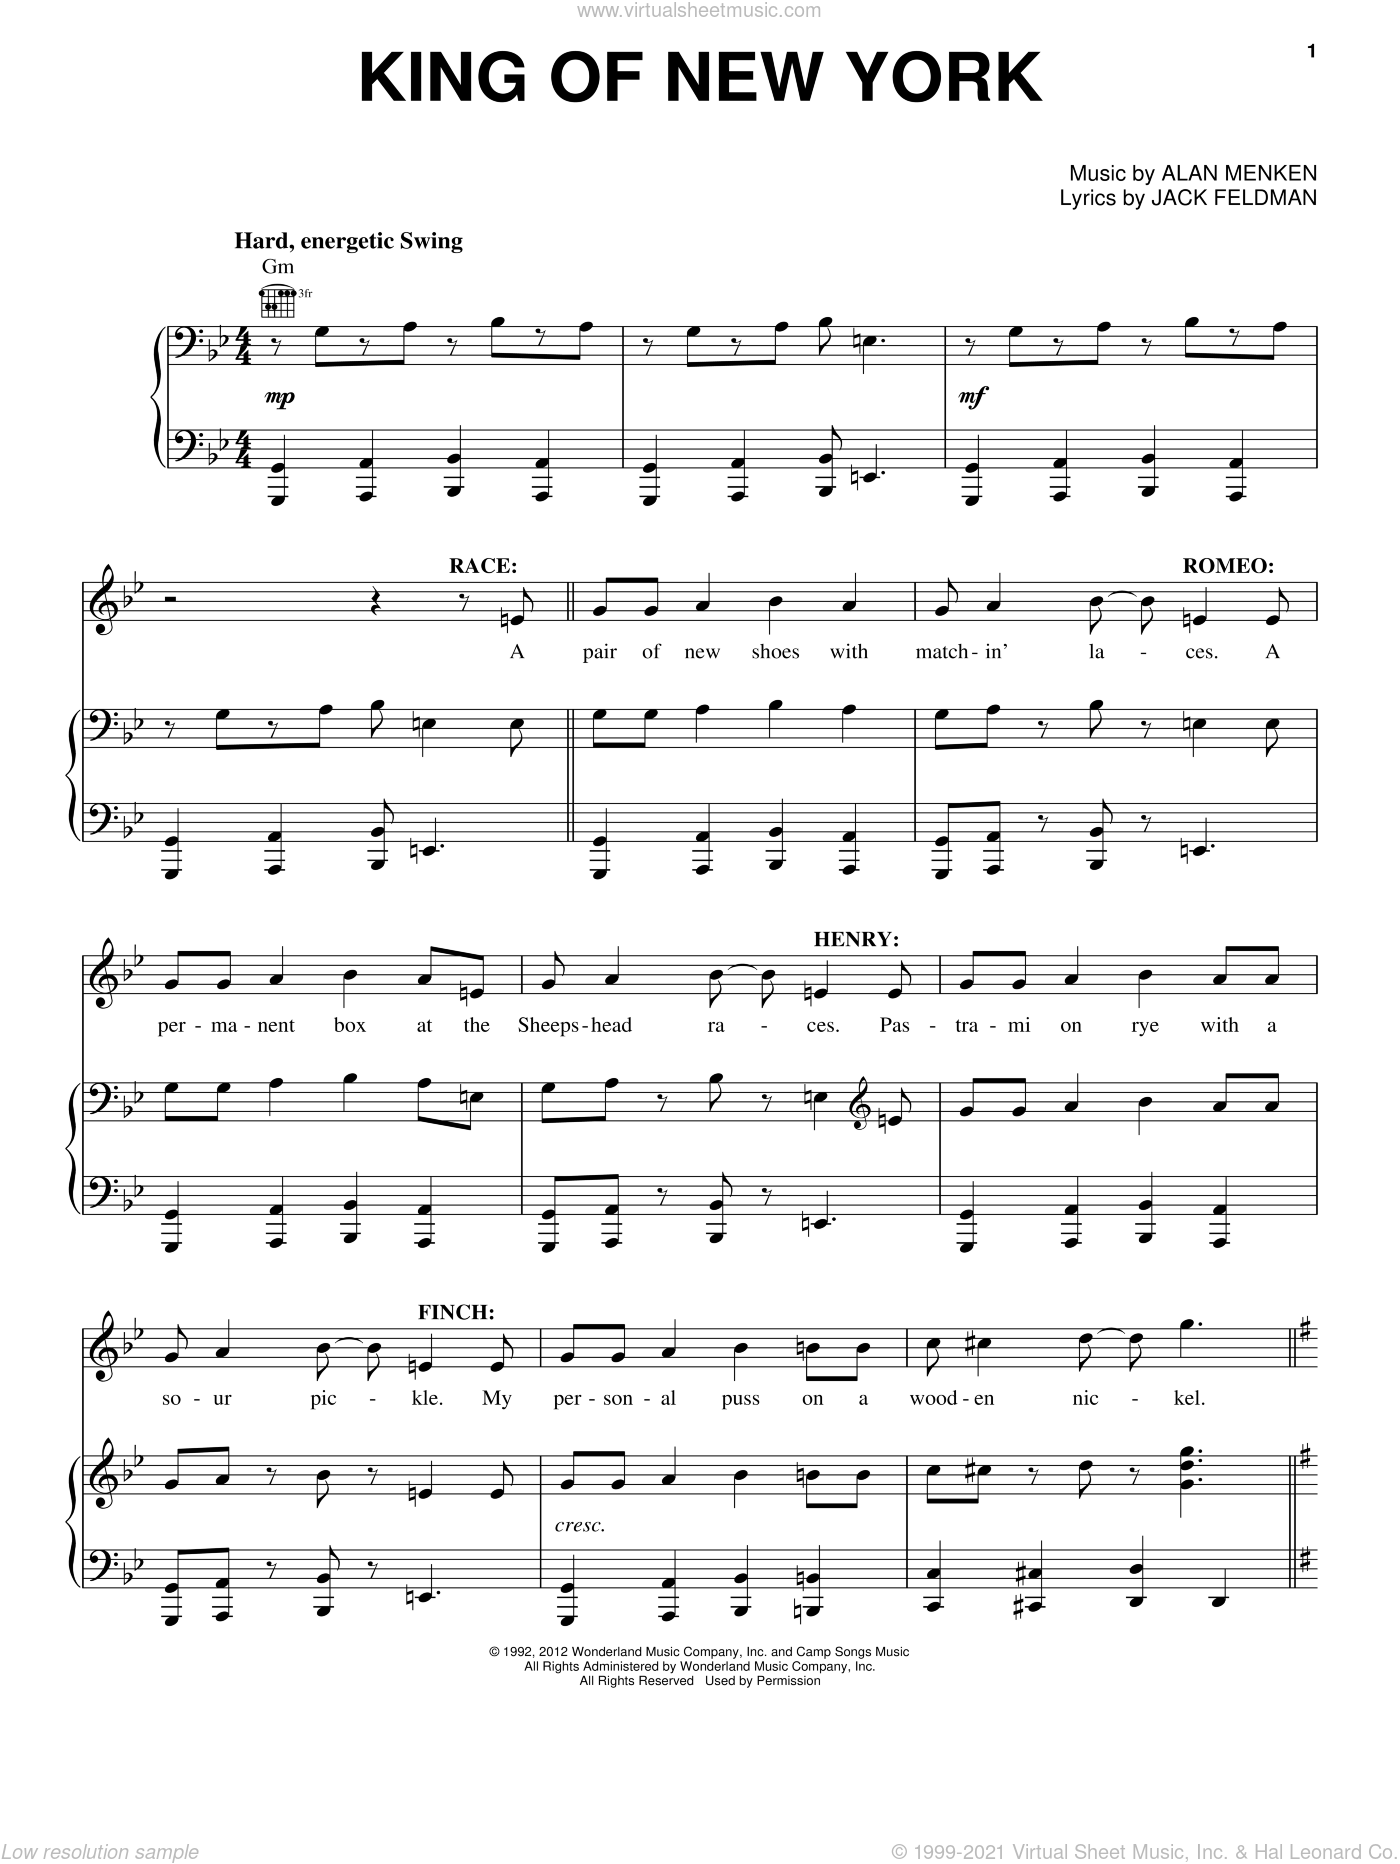 King Of New York sheet music for voice, piano or guitar by Alan Menken